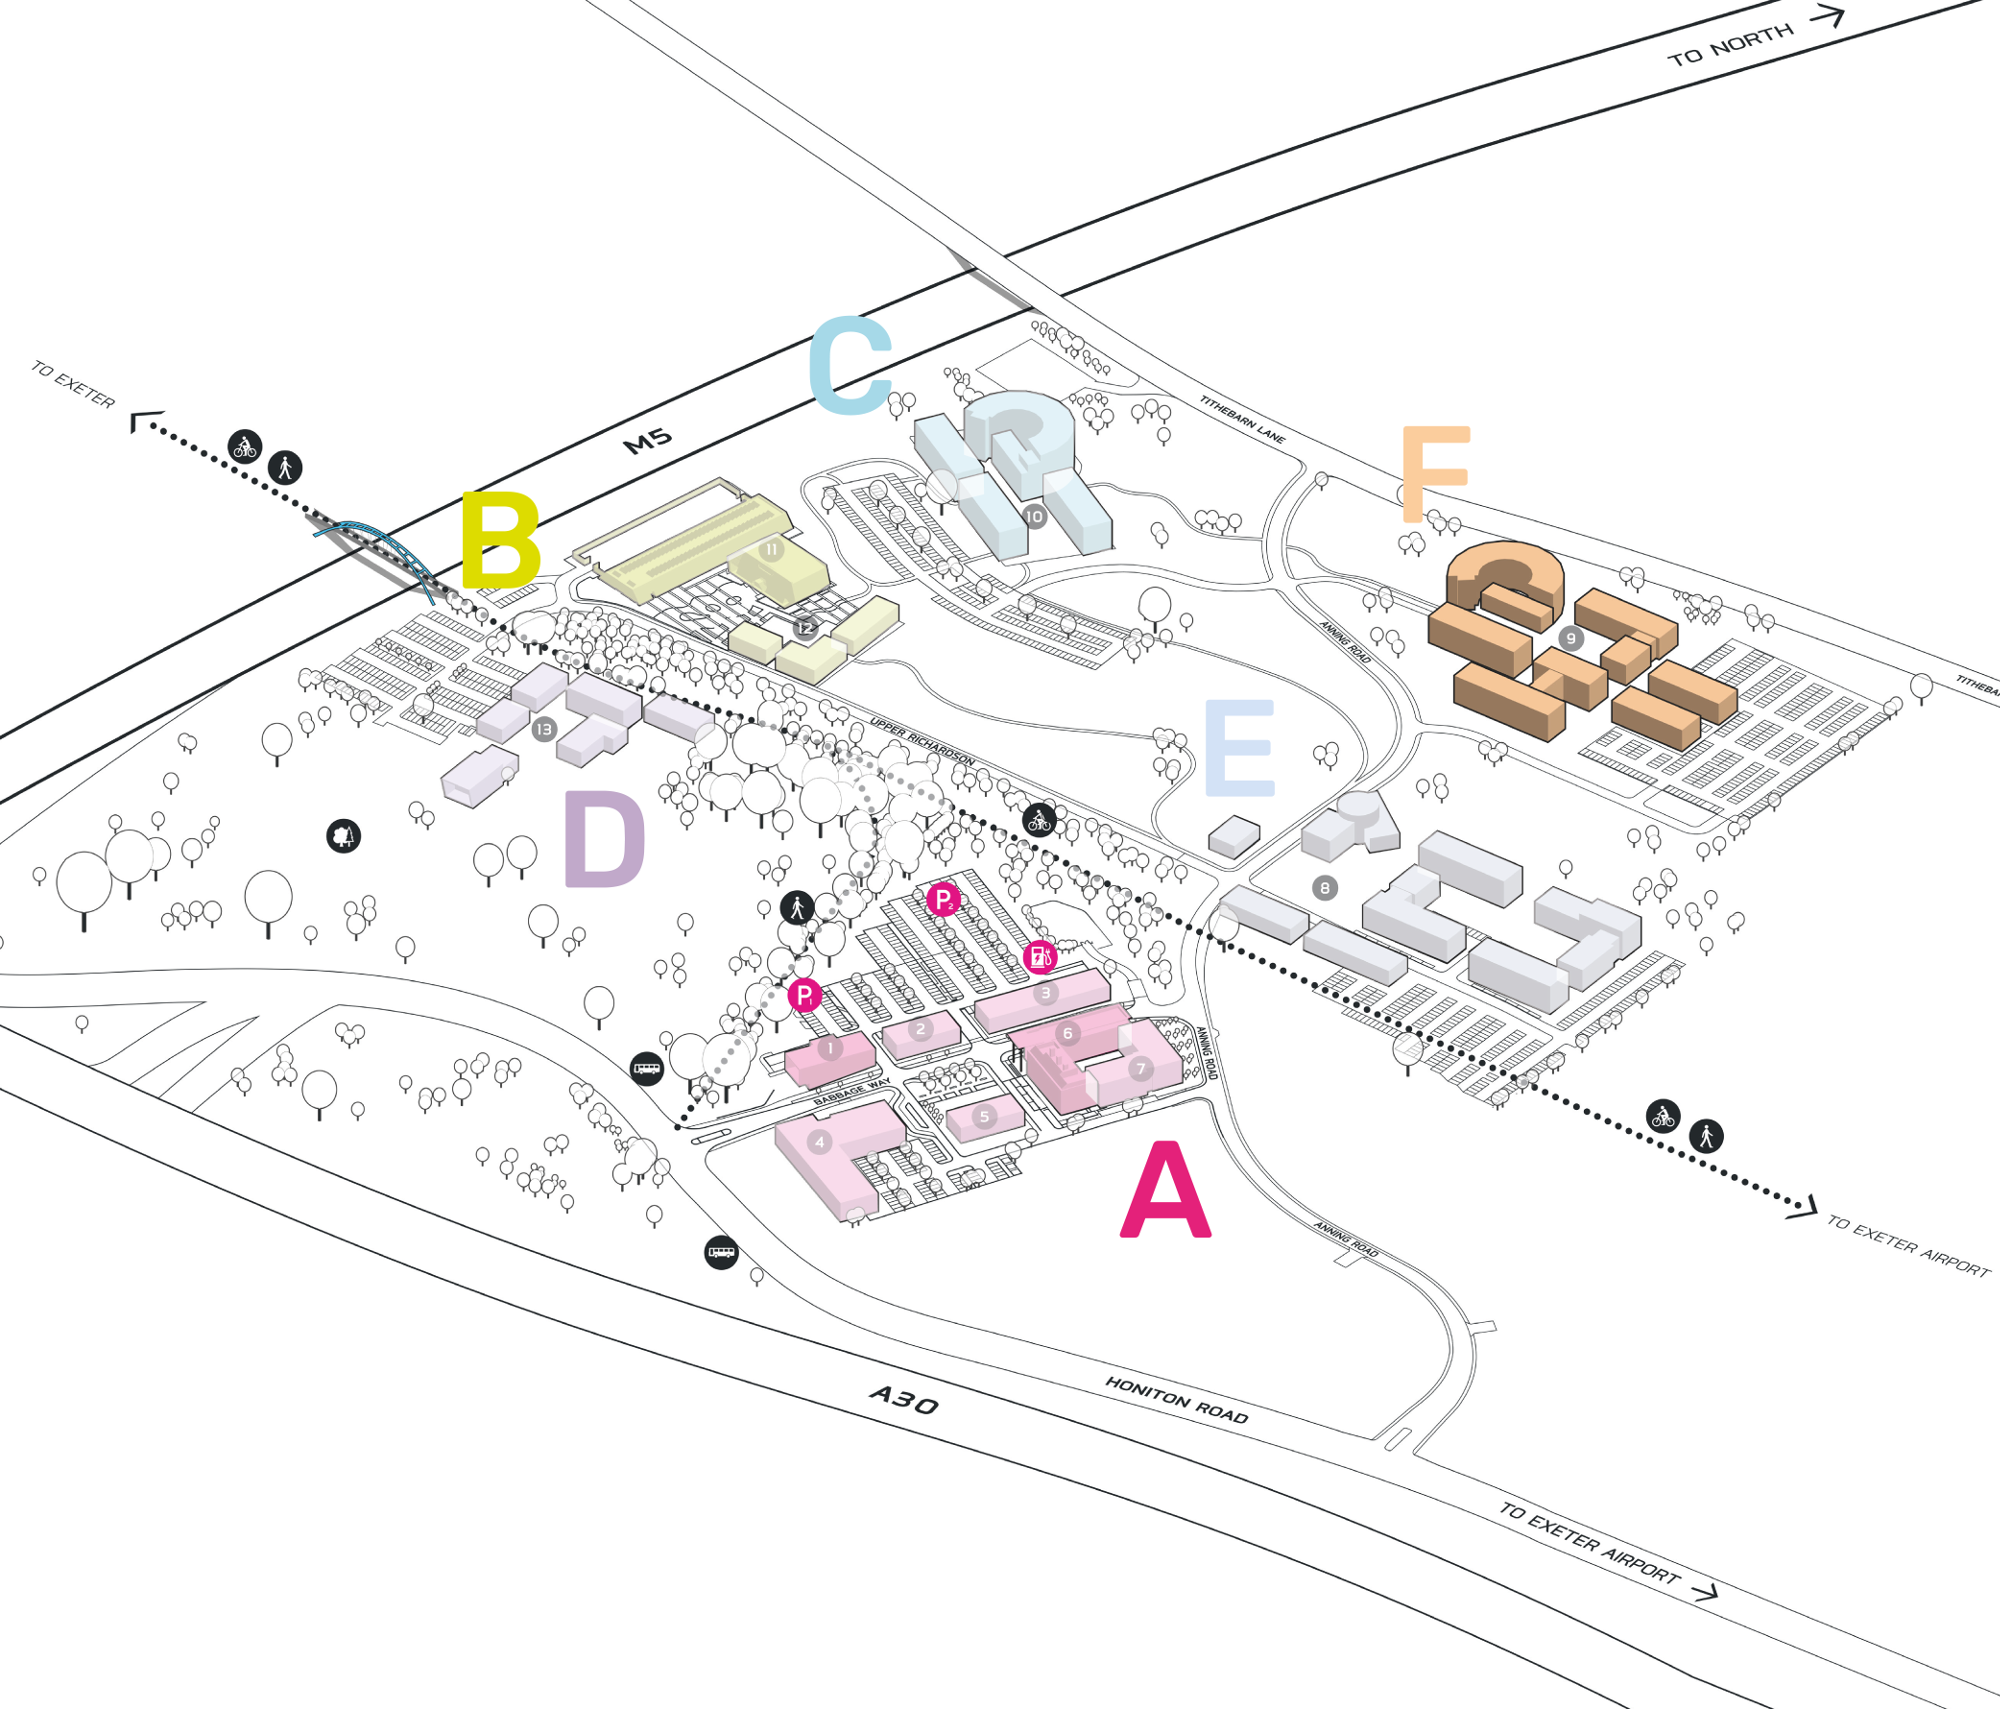 Park Plan highlighting cluster F